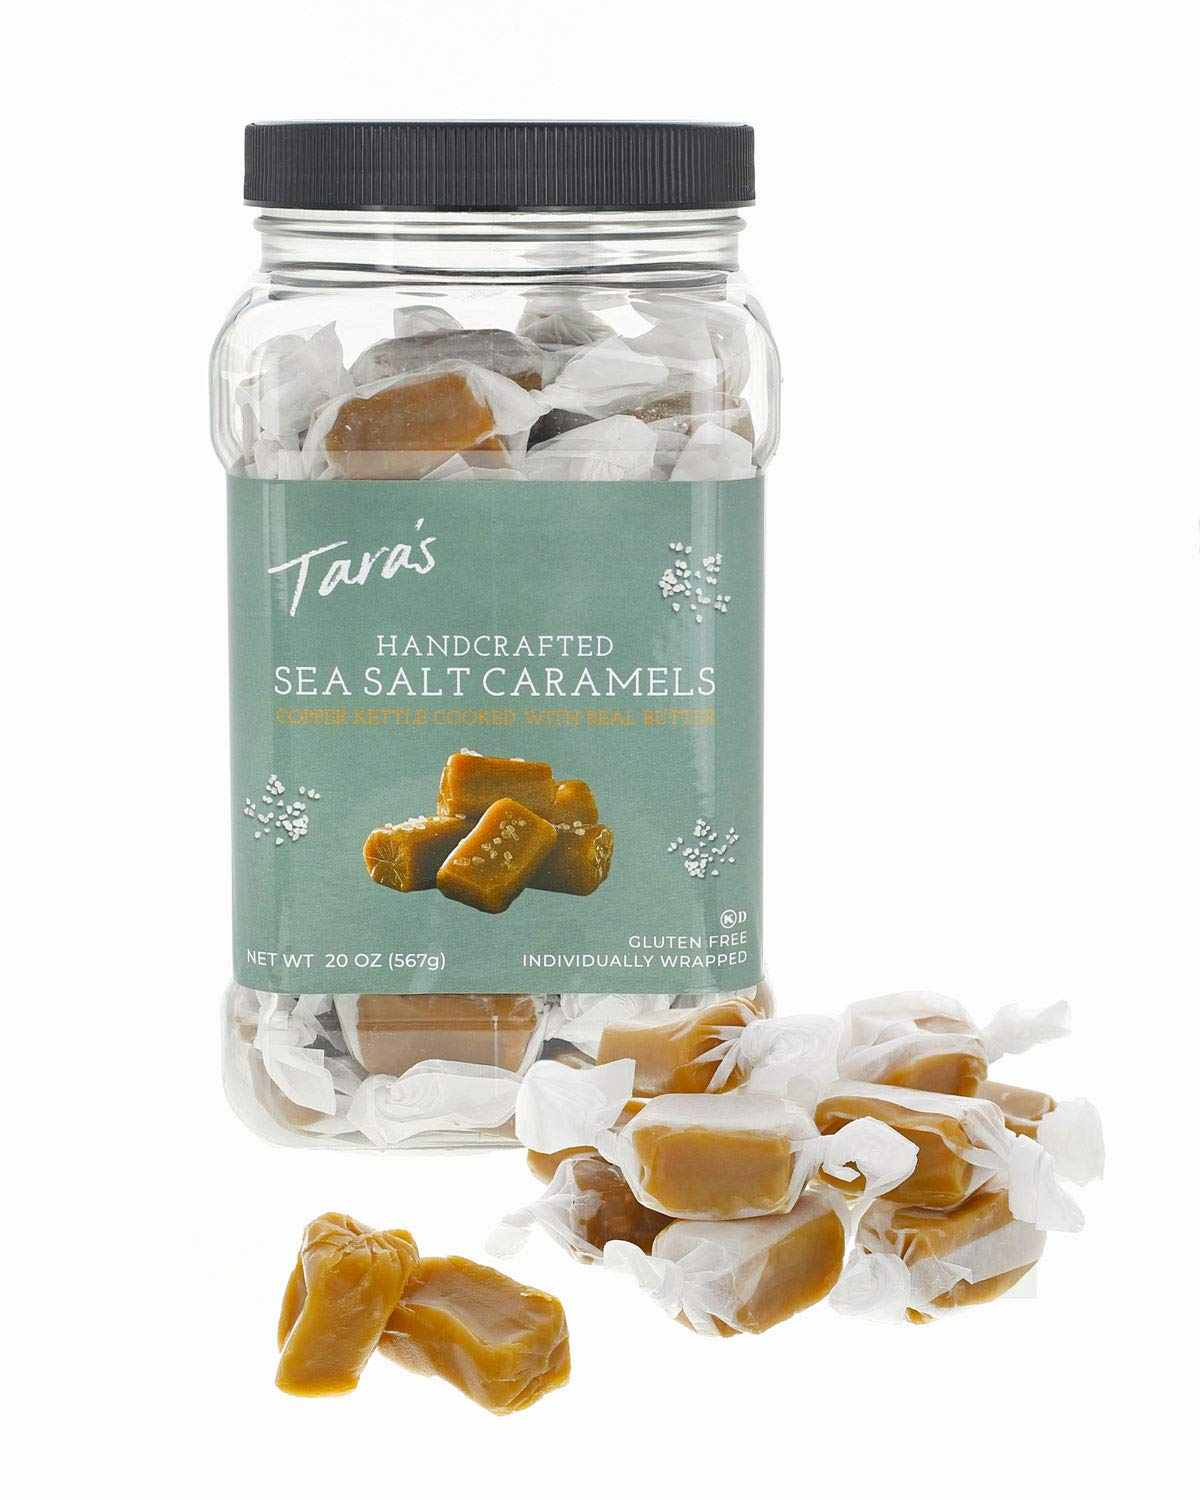 Tara's All Natural Handcrafted Gourmet Sea Salt Caramel: Small Batch, Kettle Cooked, Creamy & Individually Wrapped - 20 Ounce by Tara's (Image #4)